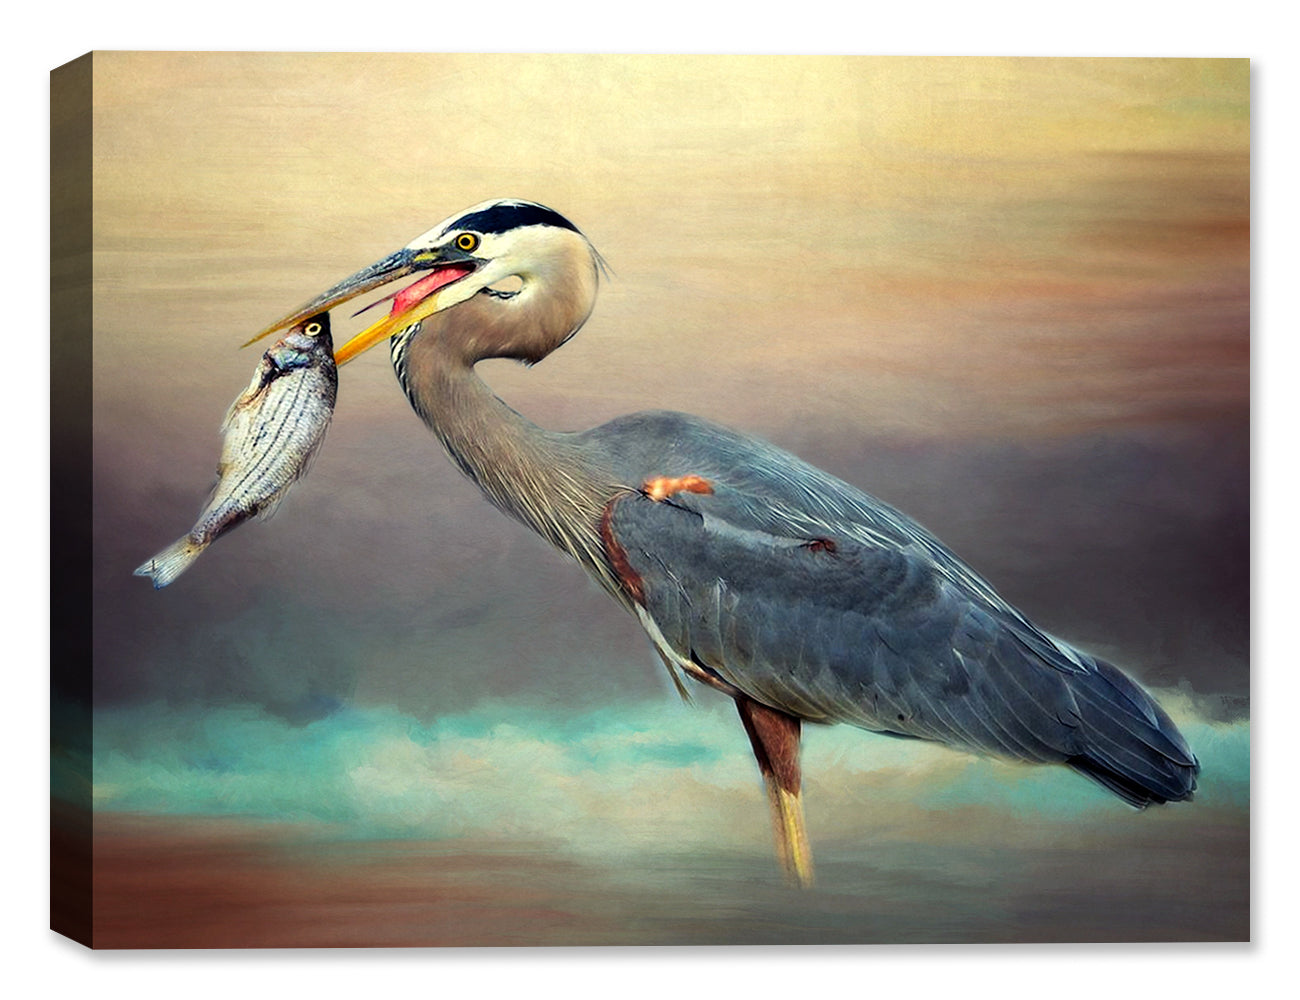 Heron Fishing - Canvas Art